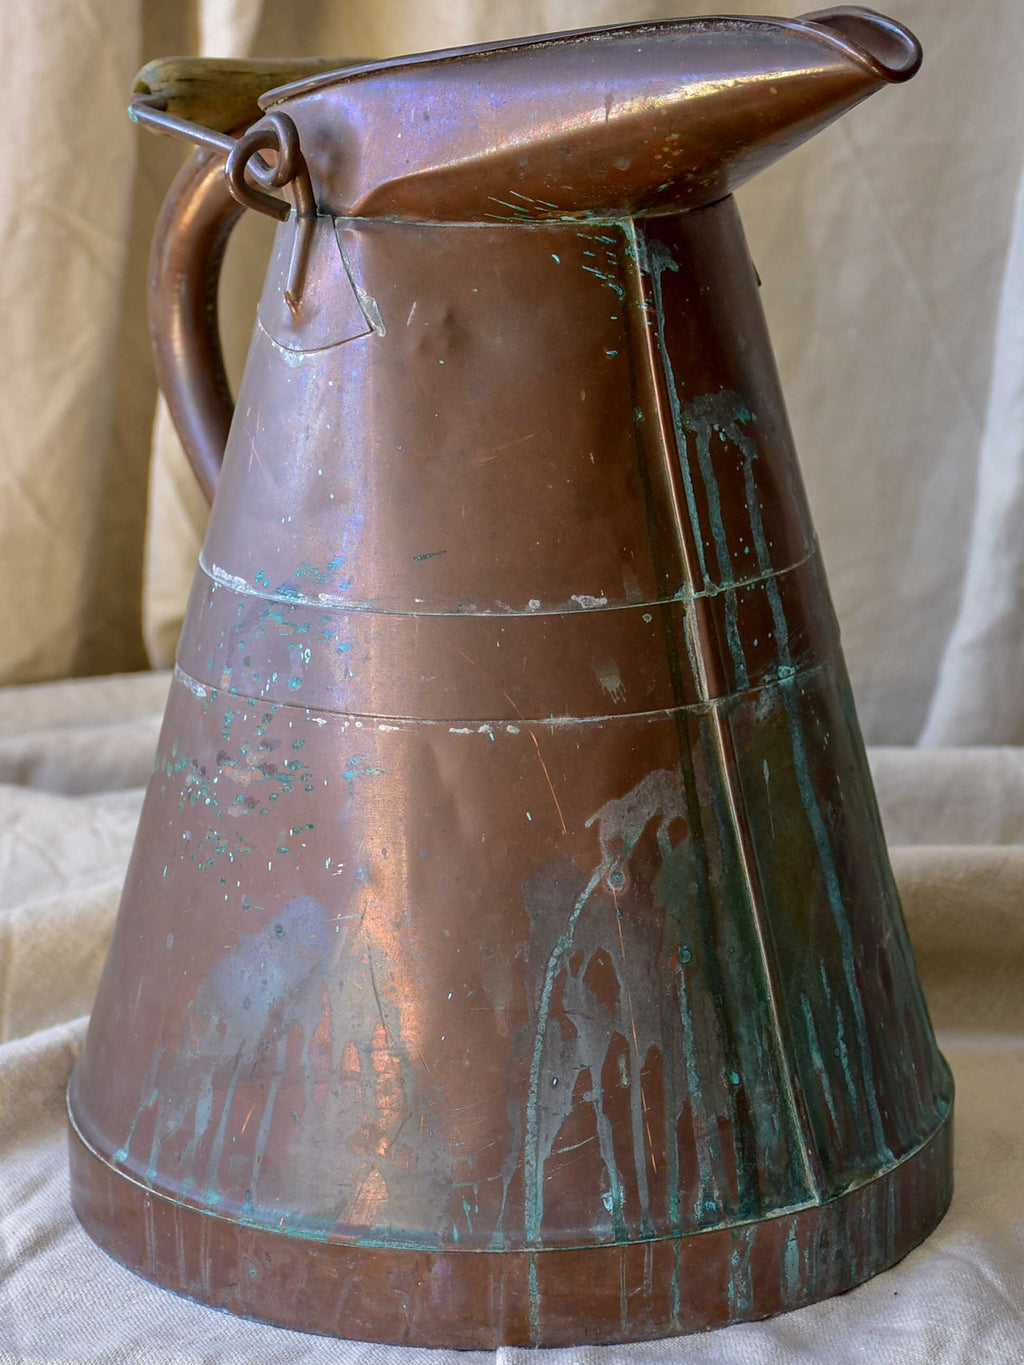 Antique French copper water pitcher with wooden handle